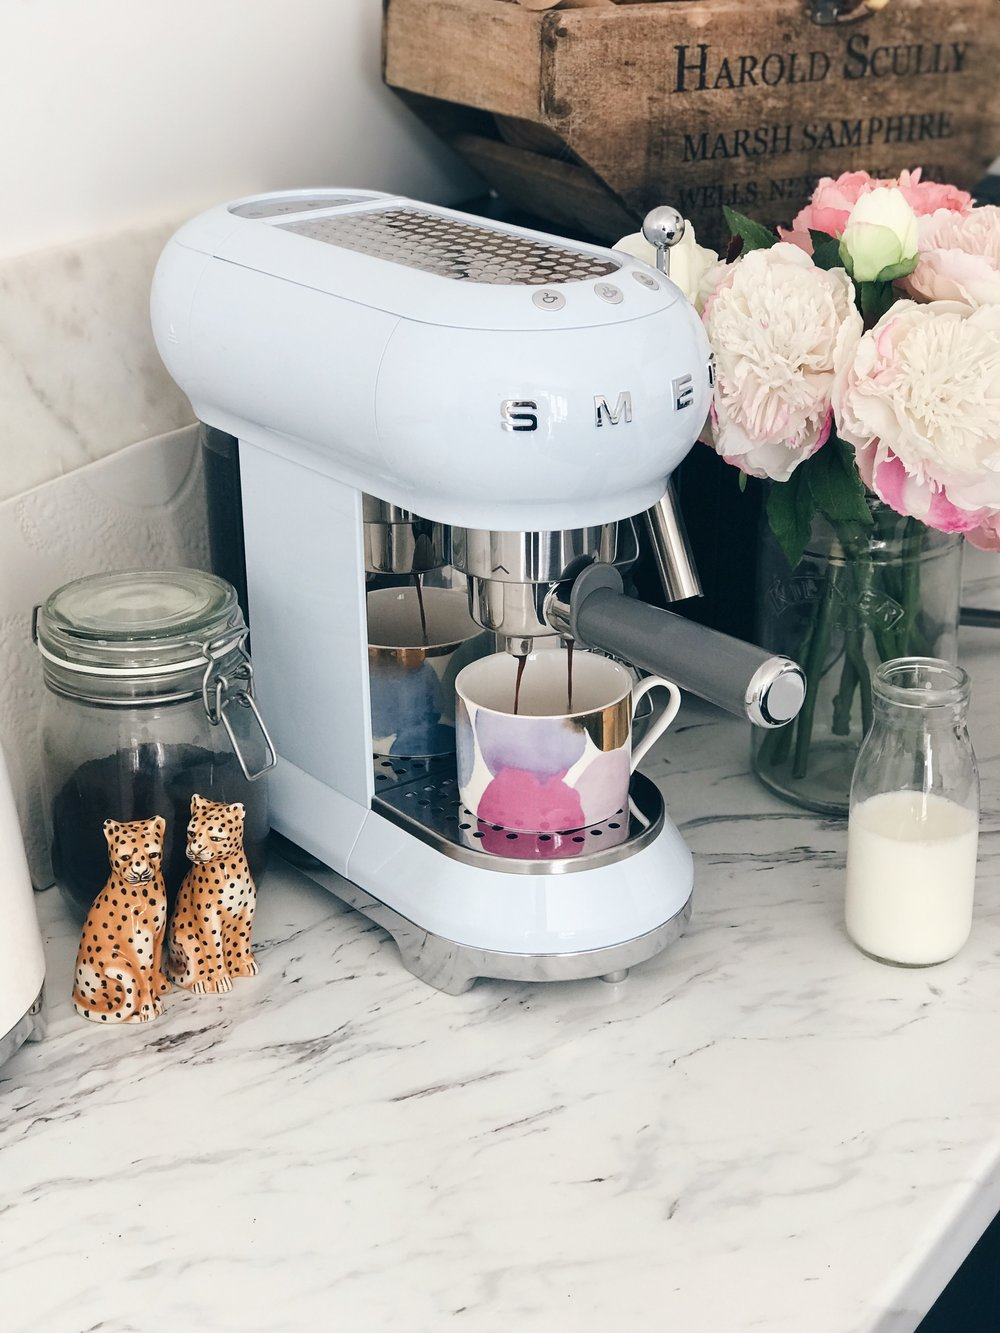 Light Blue Smeg Coffee Machine, The Creative Larder Food Blog Review